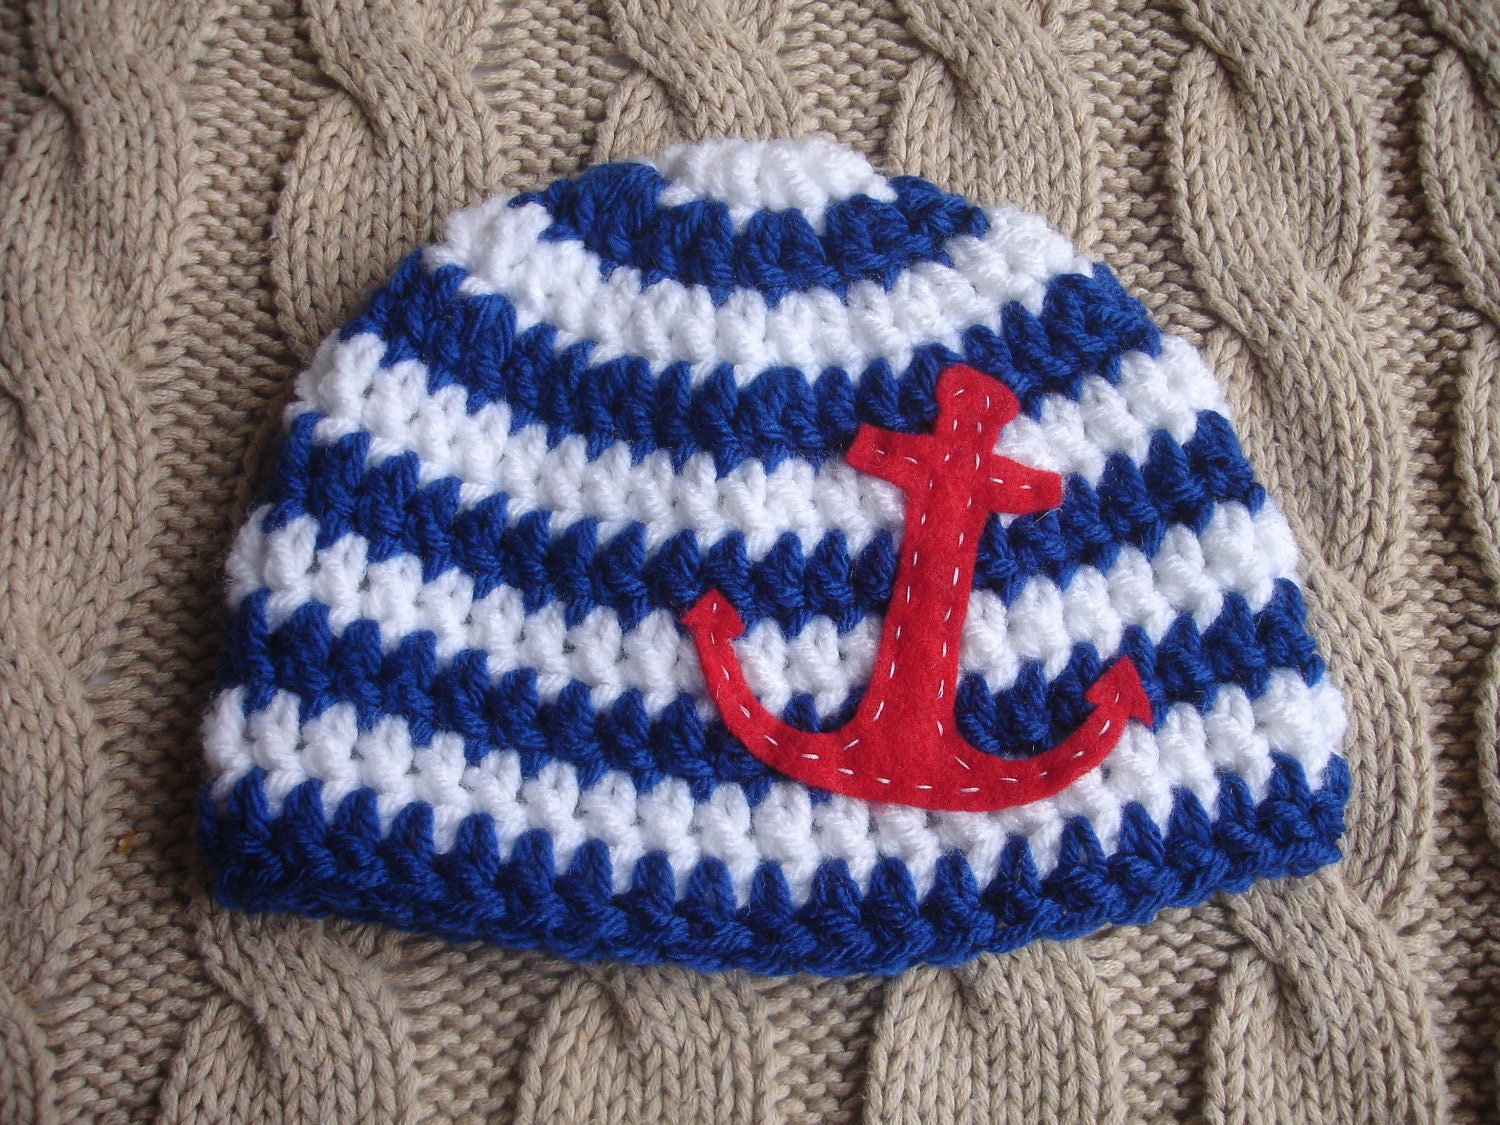 On SALE Cute Newborn Nautical Sailor Beanie Hat, ready to ship